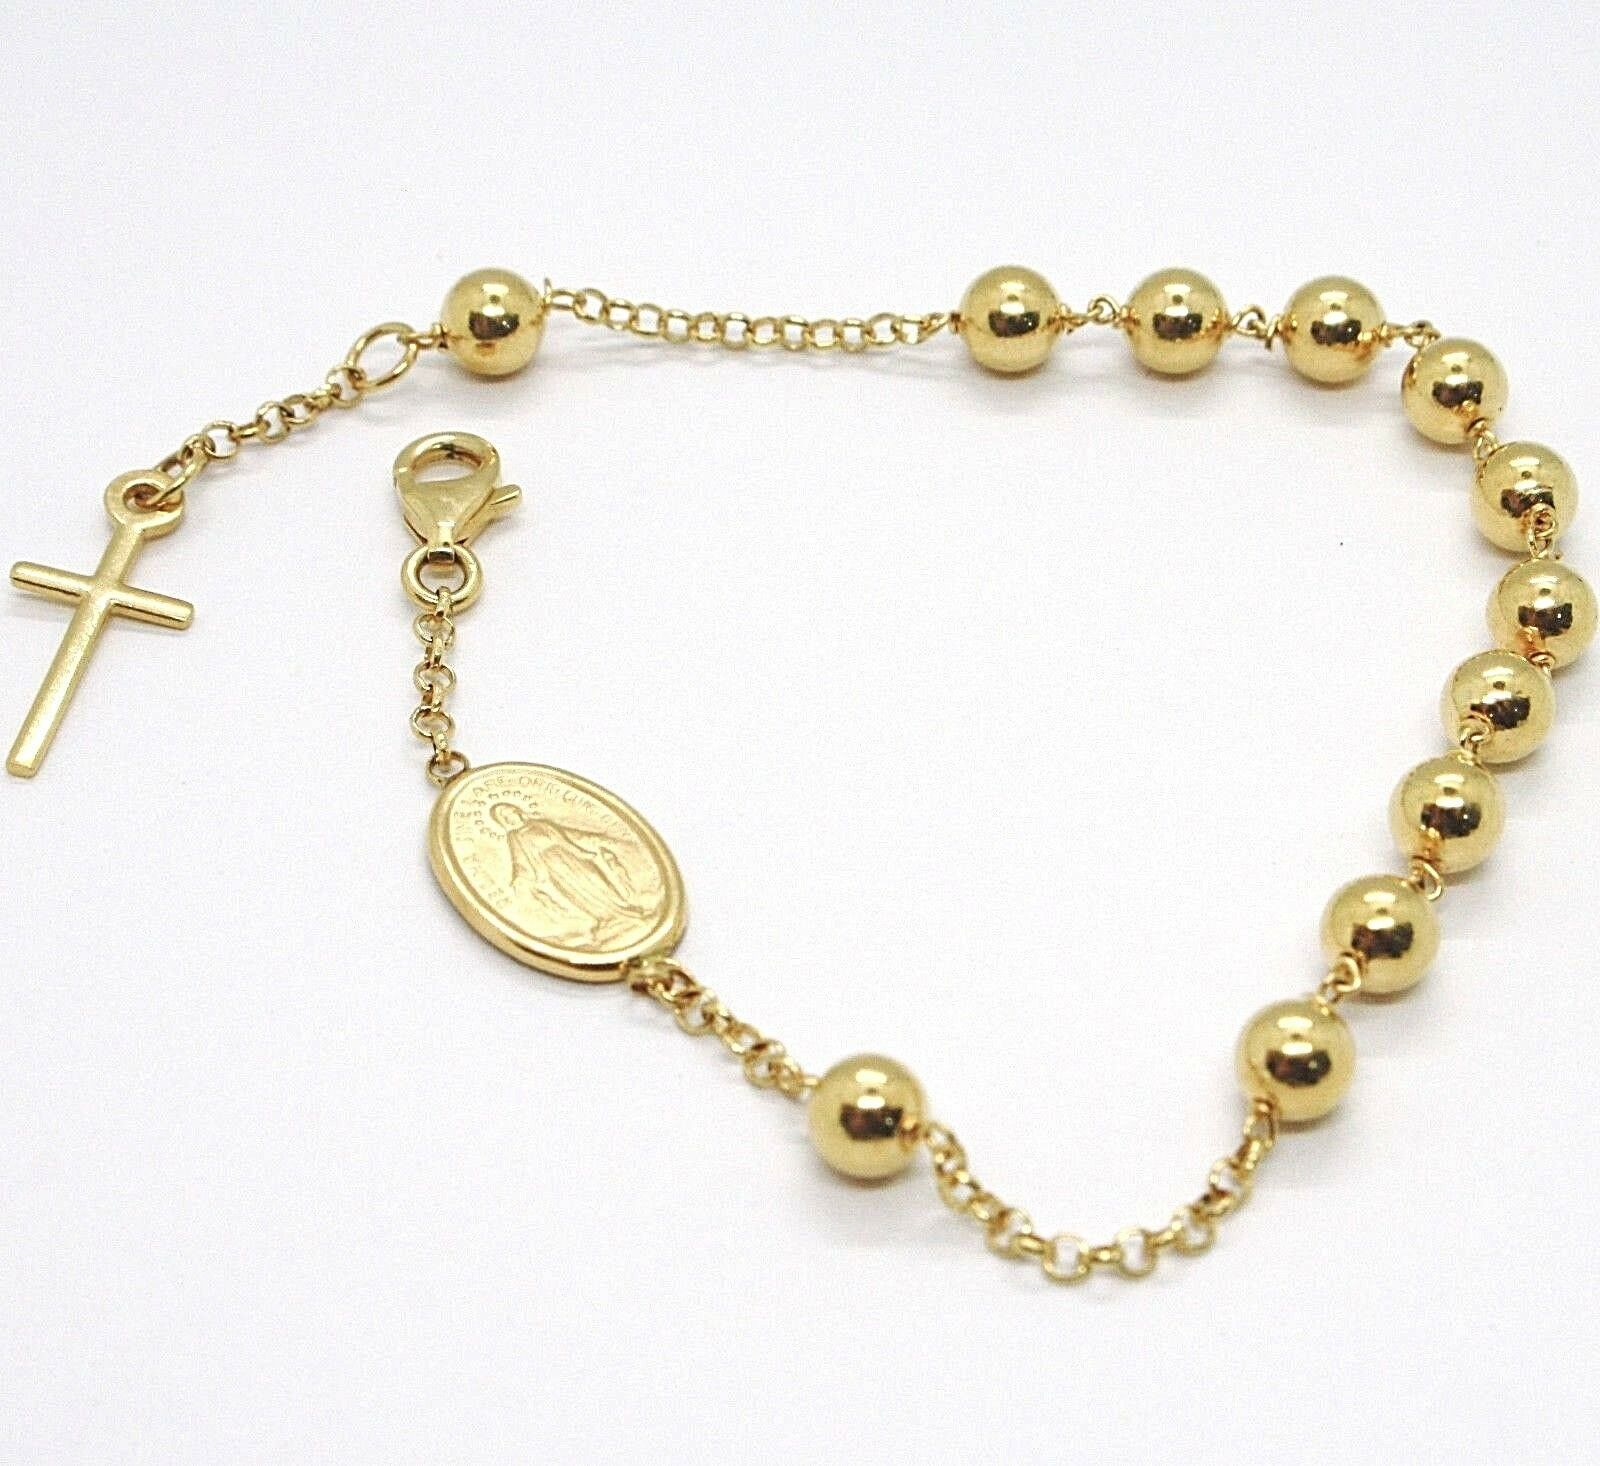 18K YELLOW GOLD  ROSARY BRACELET, 5 MM SPHERES, CROSS & MIRACULOUS MEDAL